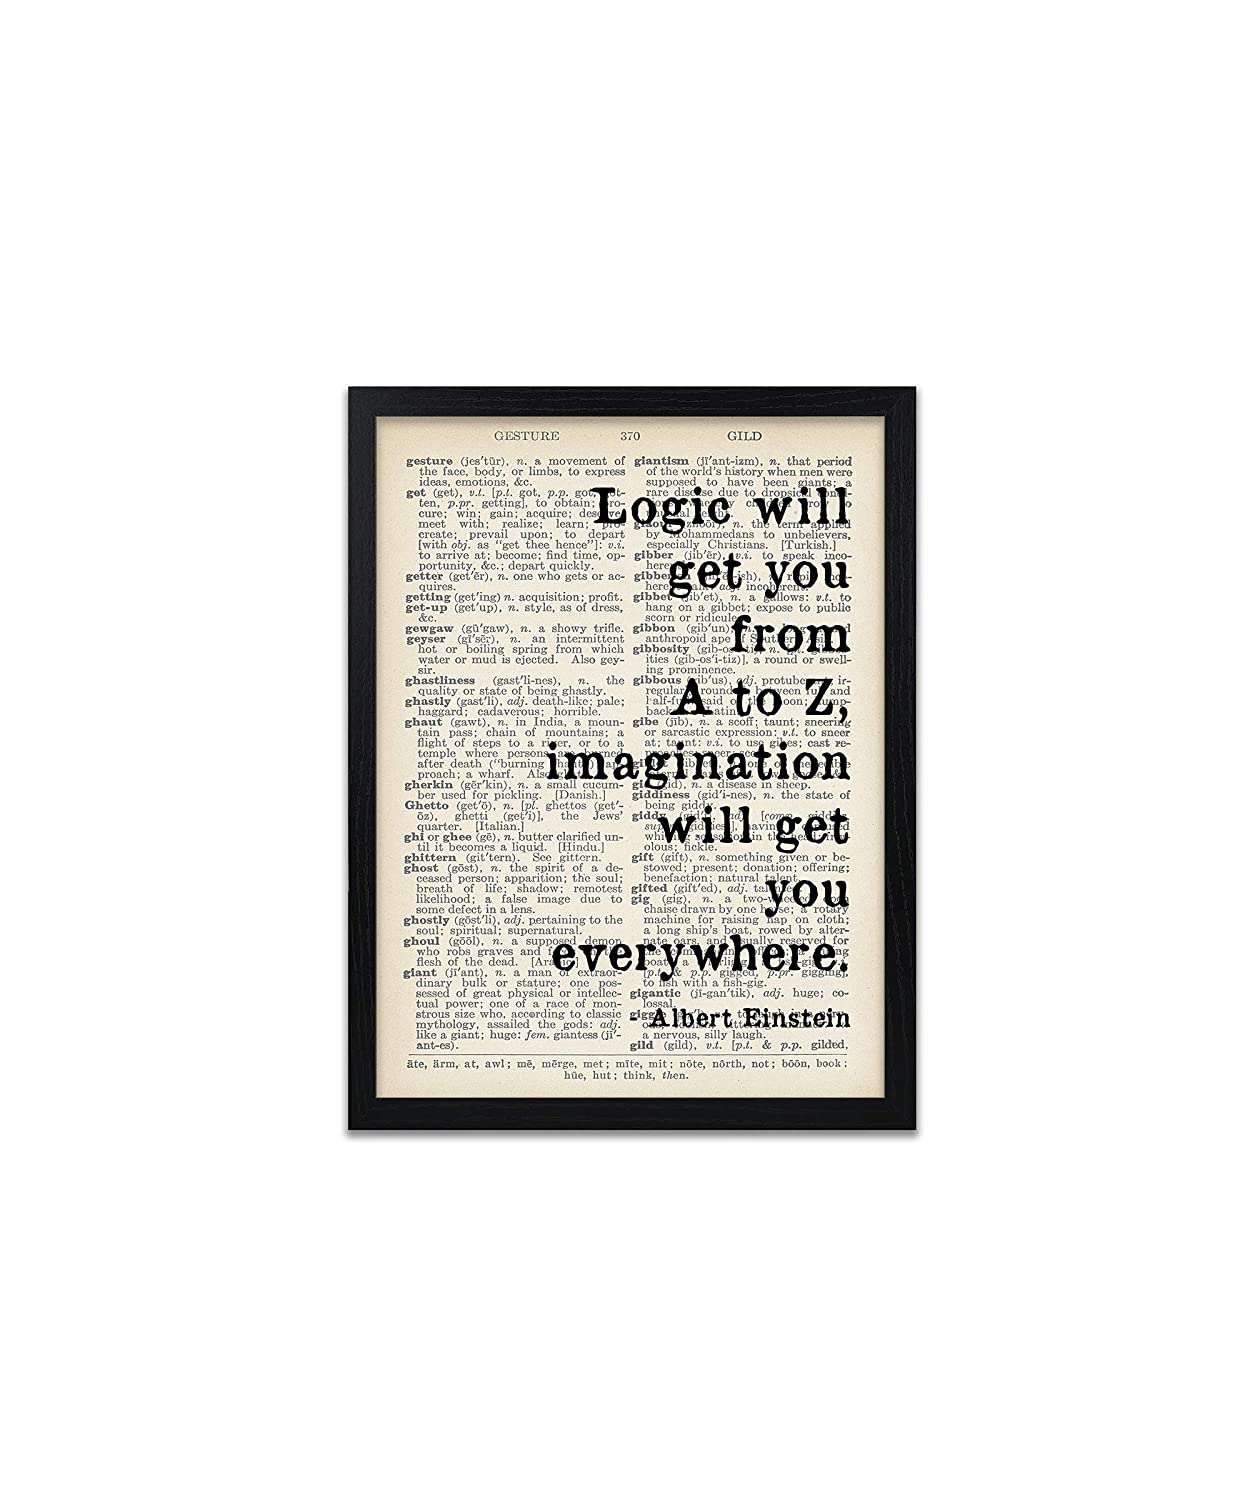 Albert Einstein Quote Prints Scientist Quotes Print Posters For Classrooms And Offices Poster Wall Art Home Decor Frame Not Included Amazon Co Uk Handmade